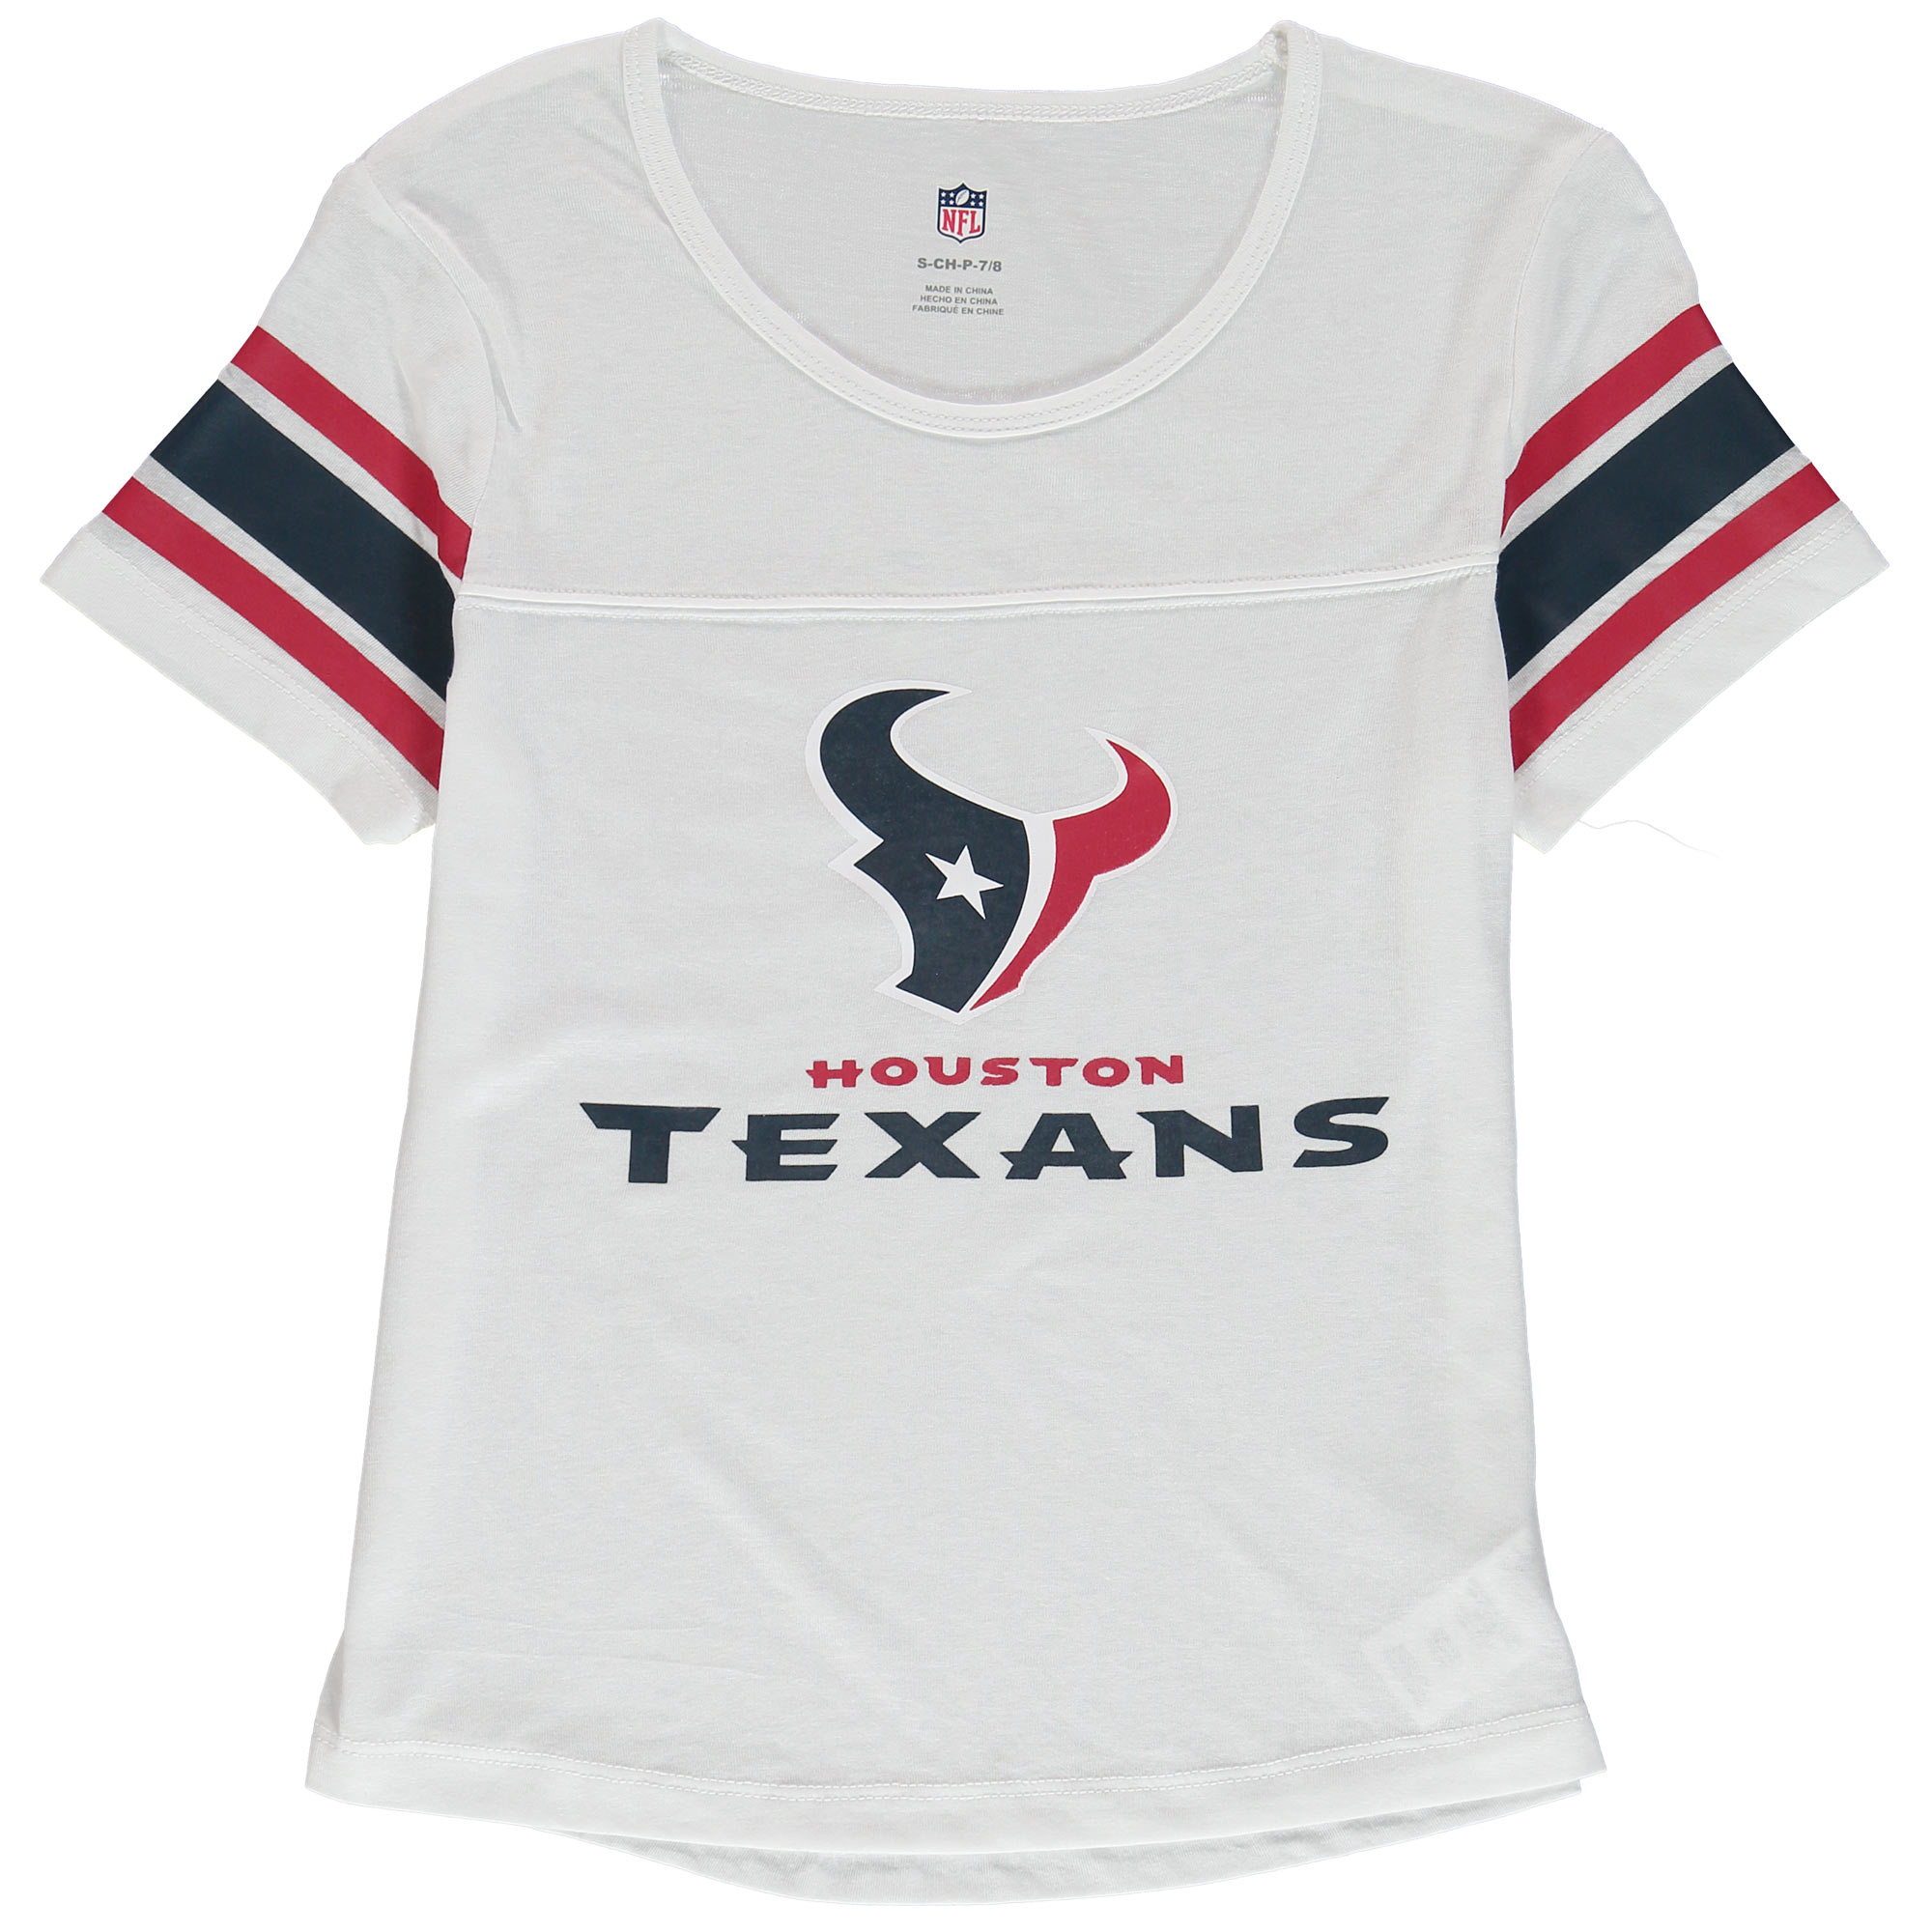 Houston Texans Girls Youth Team Pride Burnout Short Sleeve T-Shirt - White